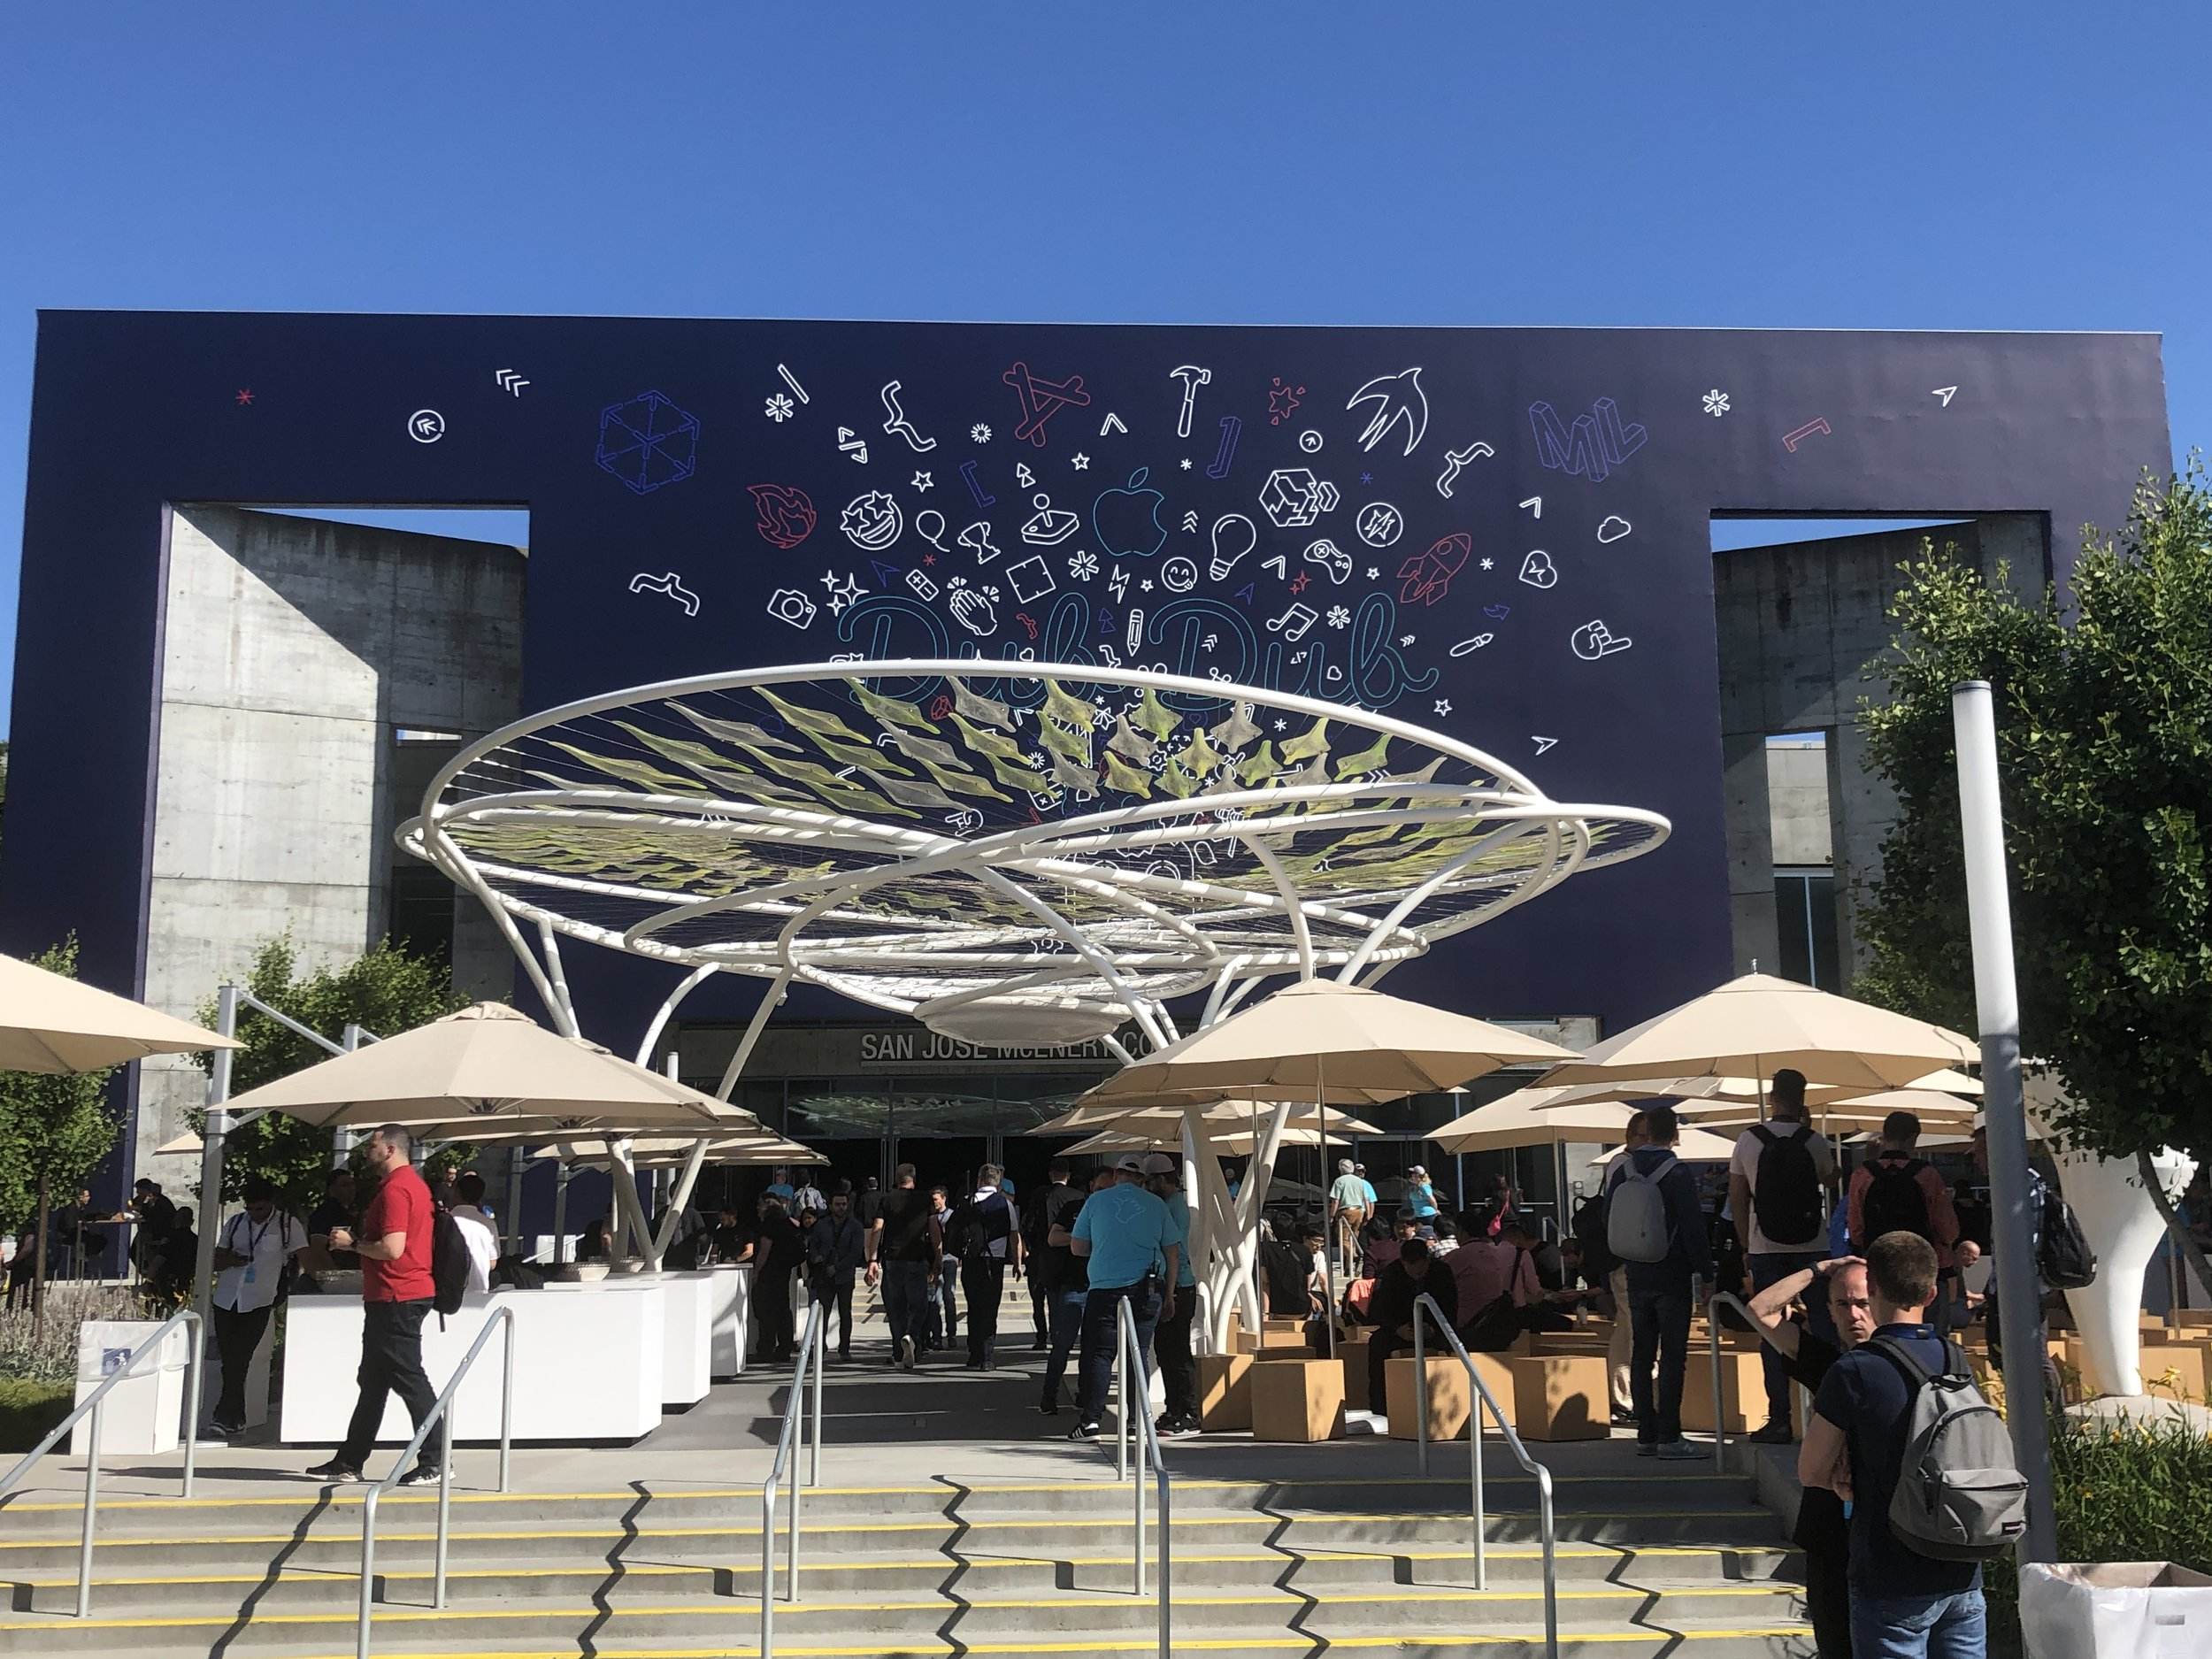 San Jose Convention Center Decked Out for WWDC